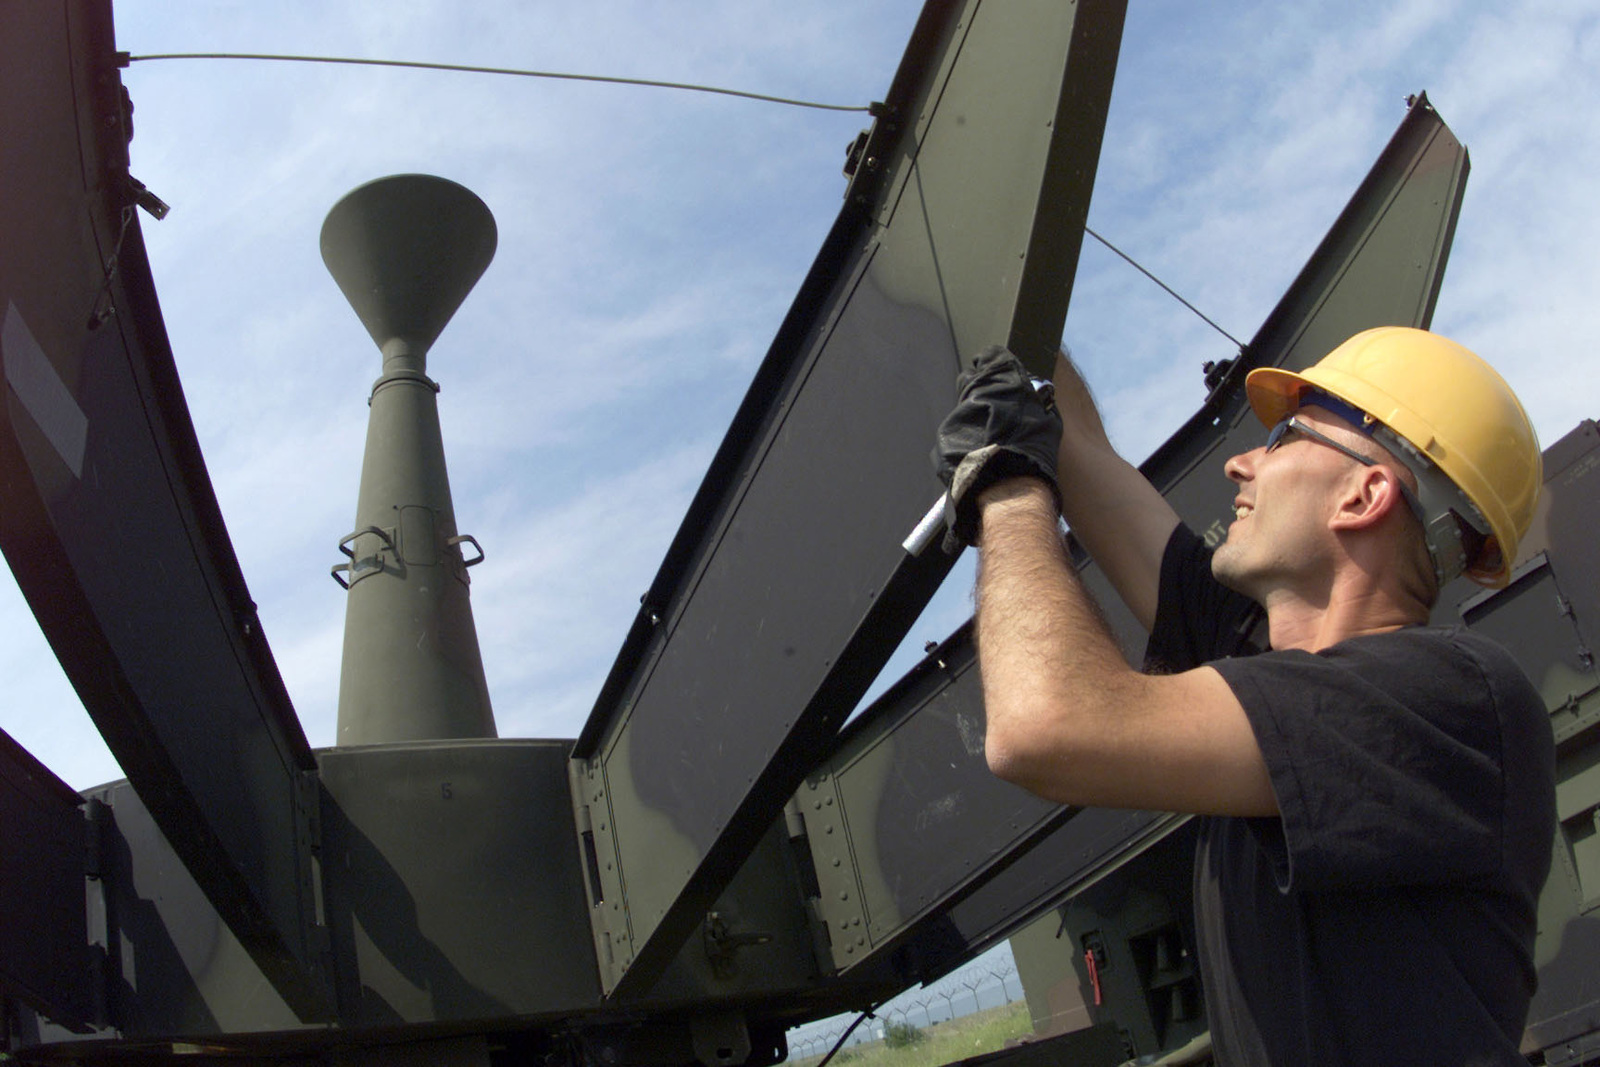 US Air Force STAFF Sergeant Thomas A. Schell, a Satellite Wideband Communications Journeyman for the 31st Communications Squadron, Aviano Air Base, Italy, rotates and locks the petal supports of a communications dish into place, during VENETO RESCUE on May 31st, 2000